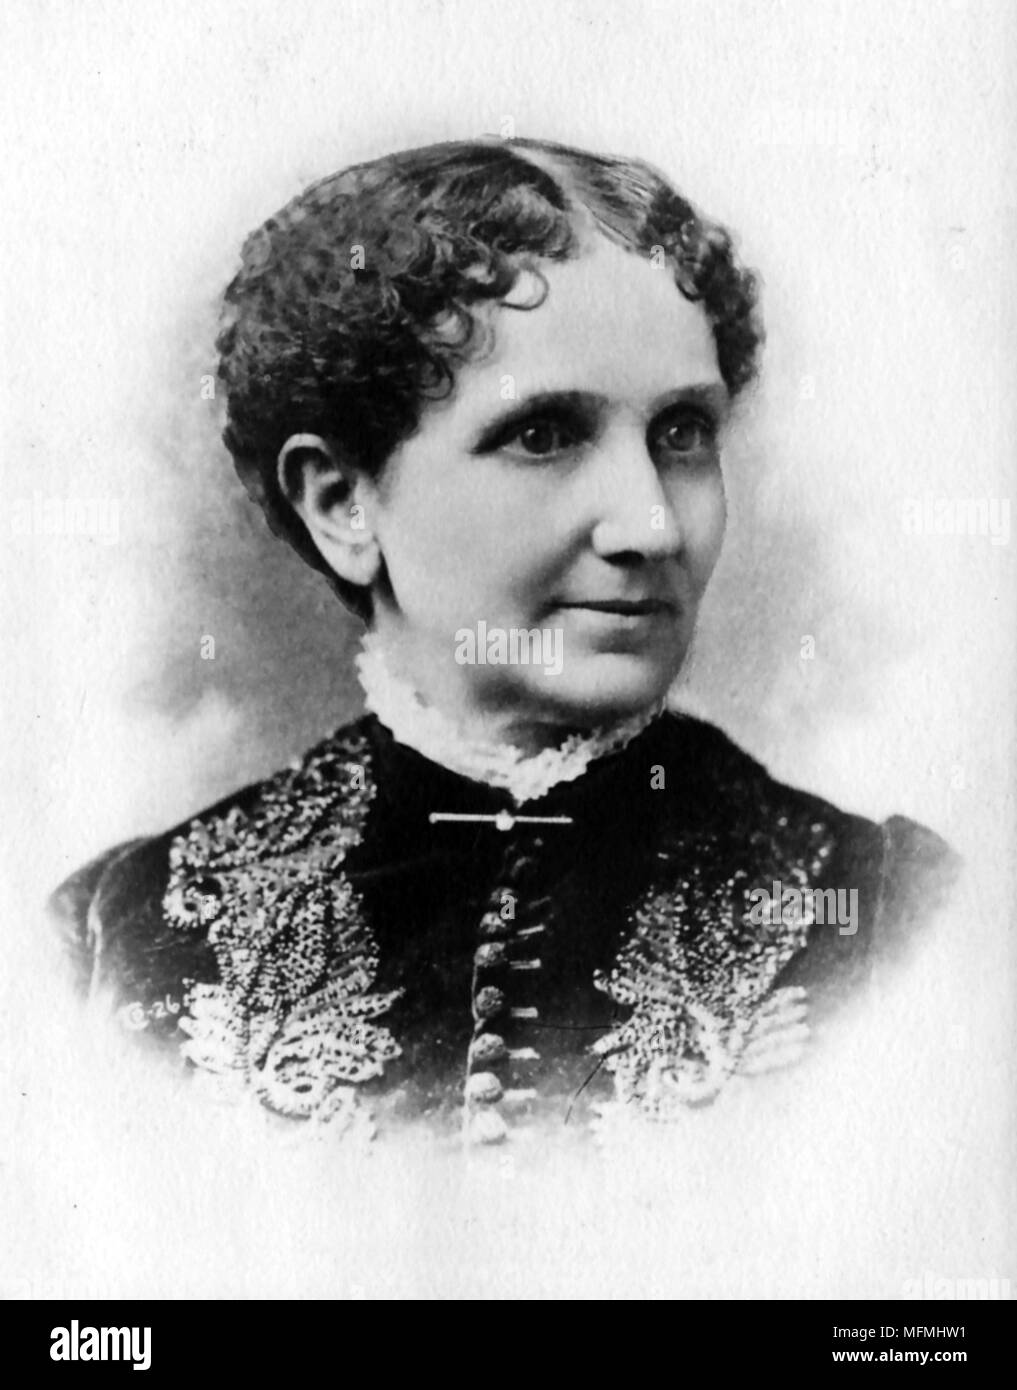 MARY BAKER EDDY (1821-1910) American founder of the Church of Christ,Scientist - Stock Image